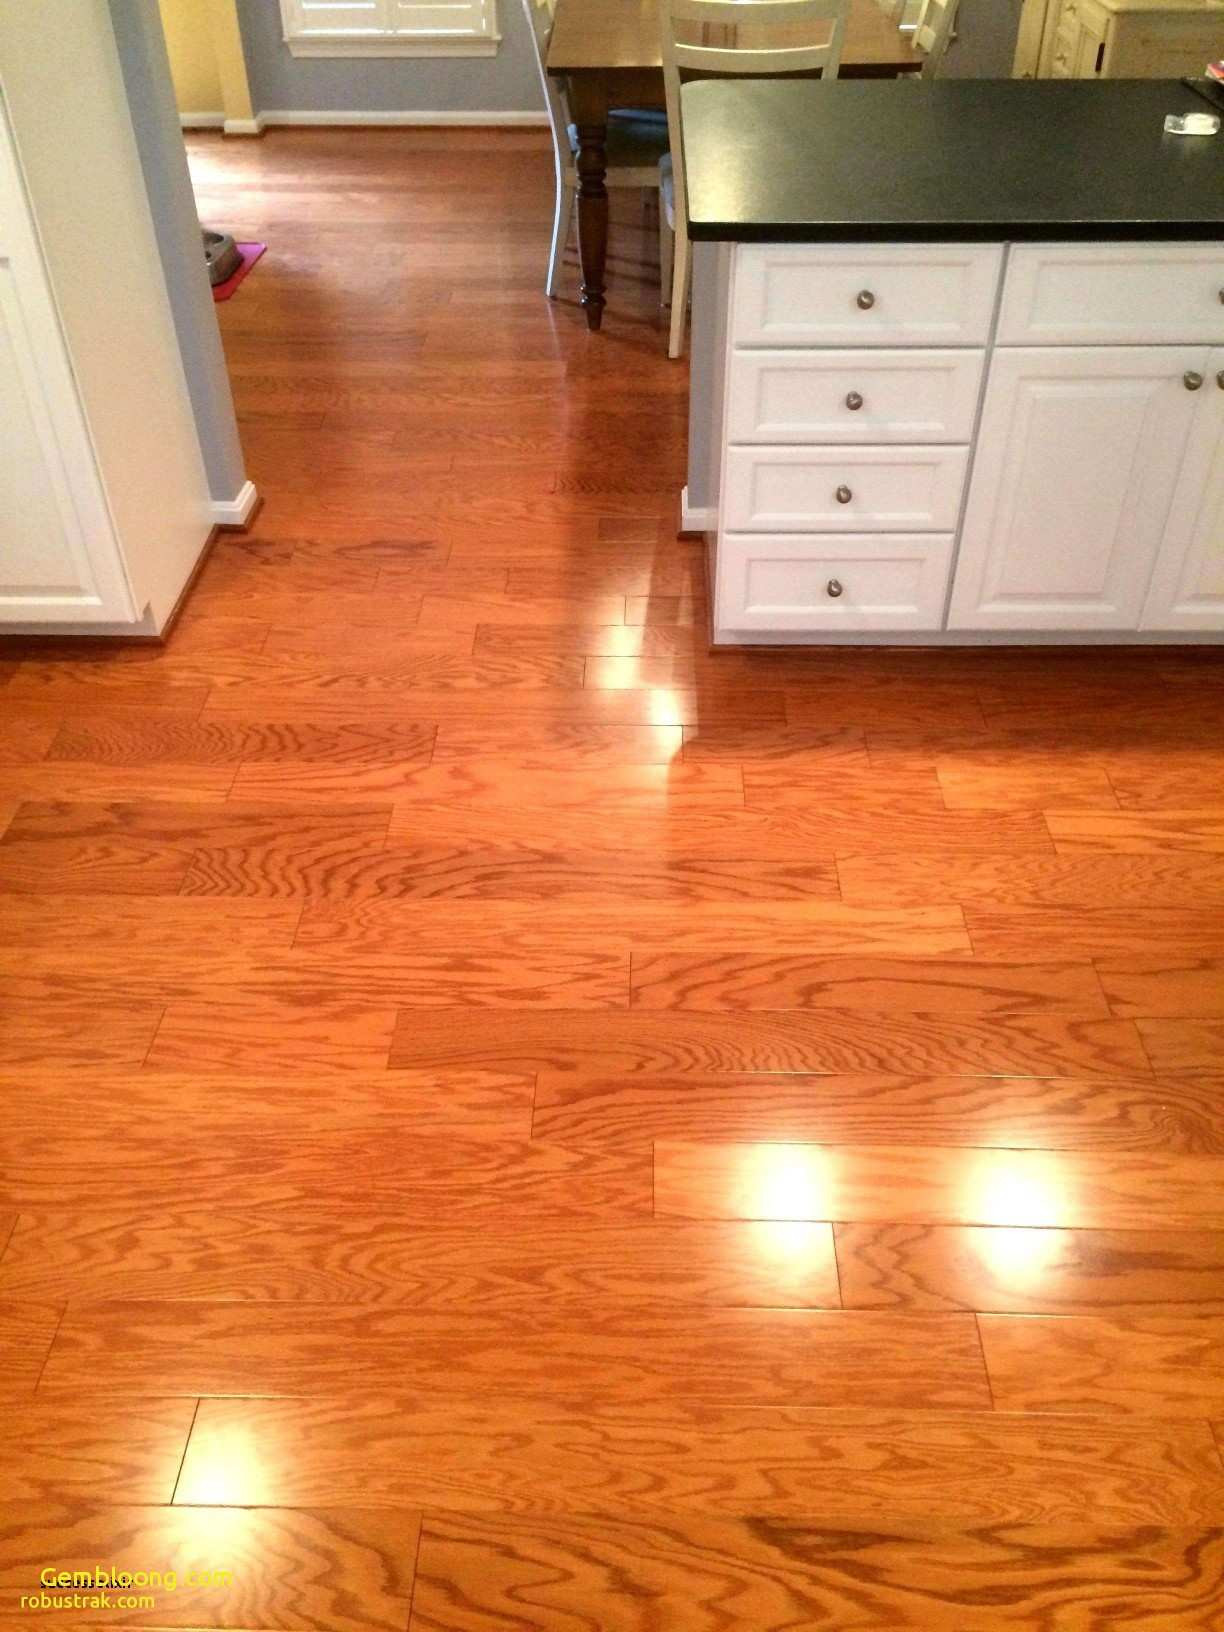 hardwood floor transition to stairs of wood for floors facesinnature throughout hardwood floors in the kitchen fresh where to buy hardwood flooring inspirational 0d grace place barnegat